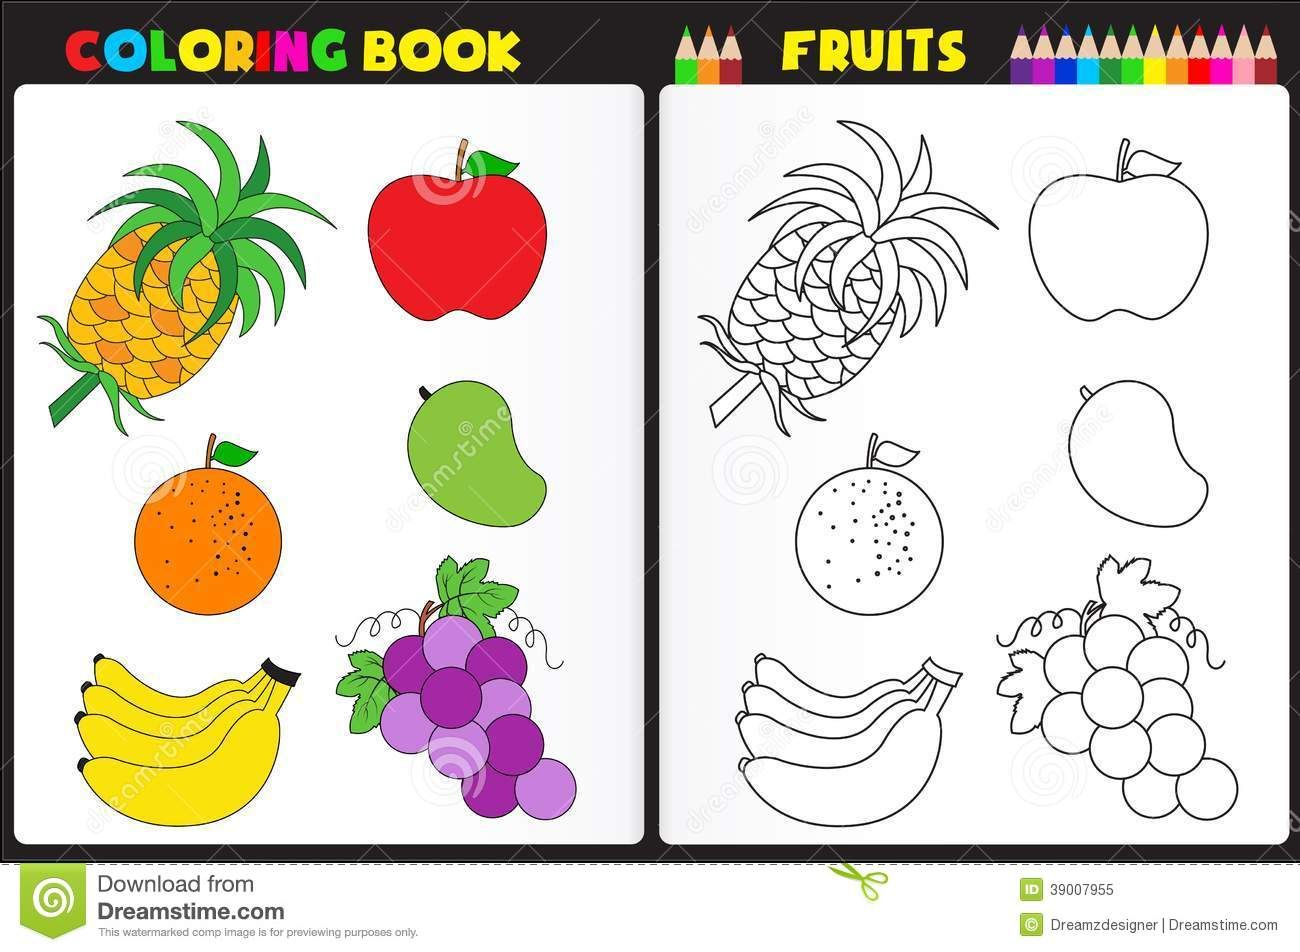 coloring book page fruits nature kids colorful sketches to color